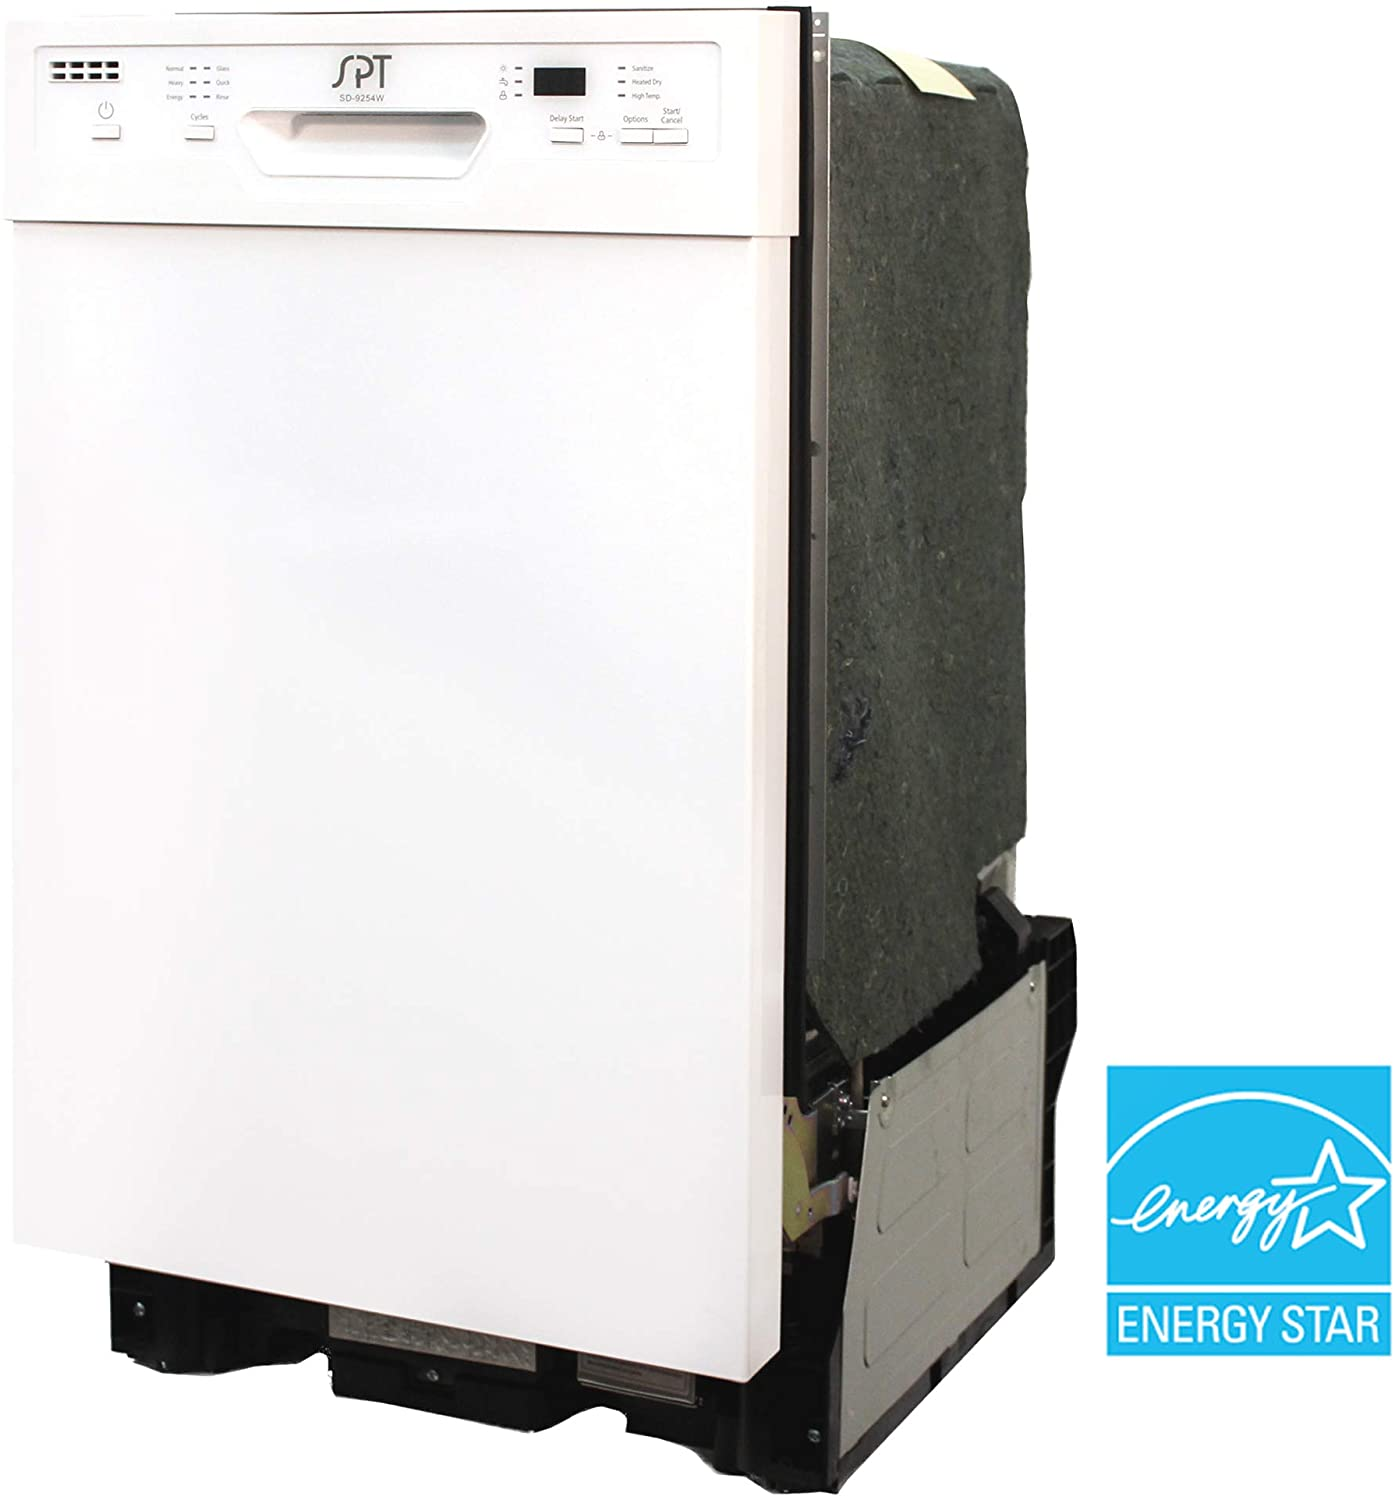 ​SPT SD-9254W Energy Star Built-In Dishwasher